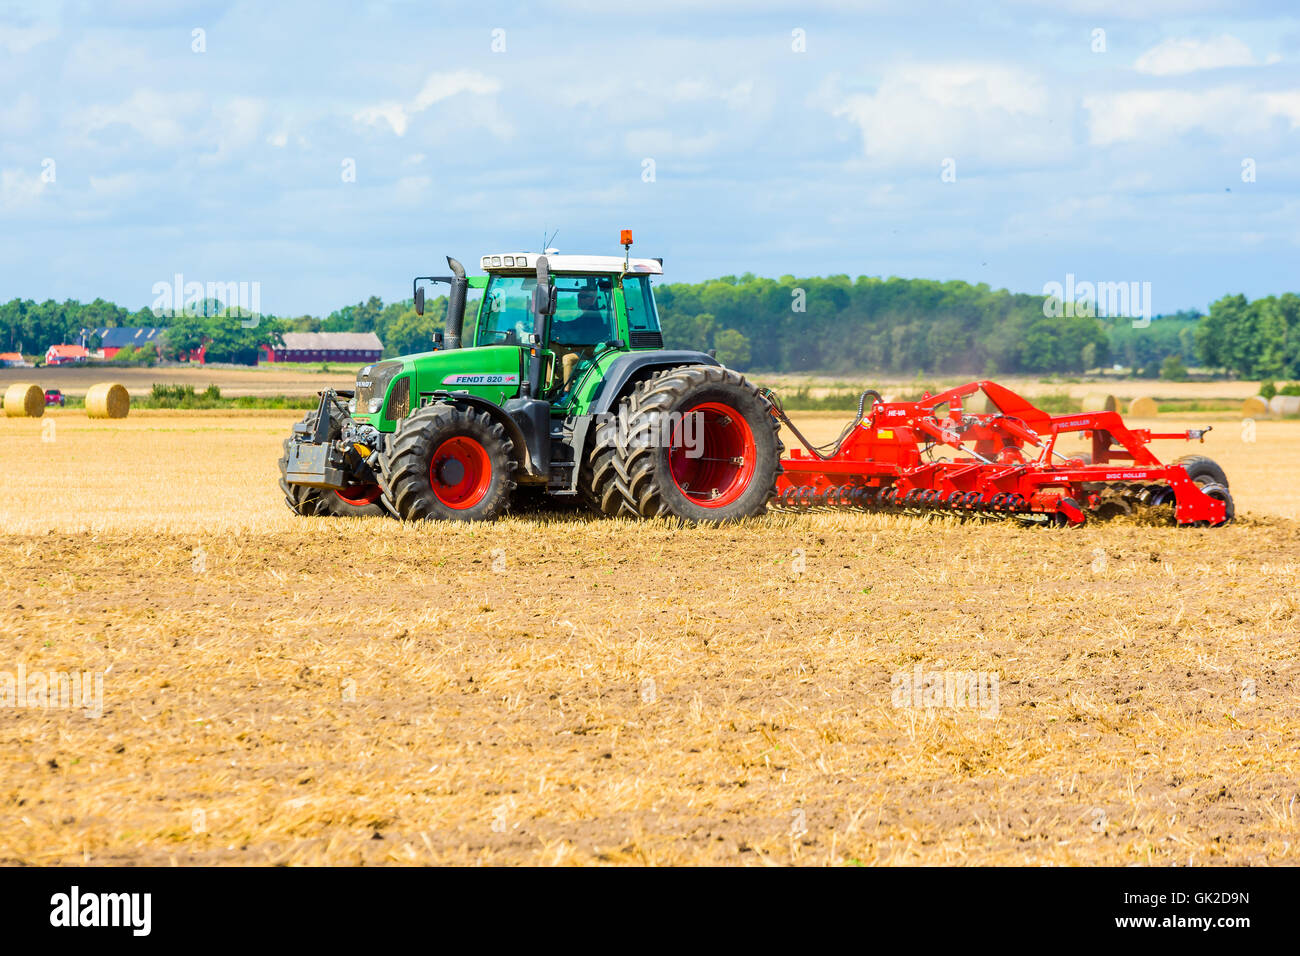 Kalmar, Sweden - August 10, 2016: Farmer disk rolling field with green Fendt 820 tractor. Farmhouse and forest in - Stock Image